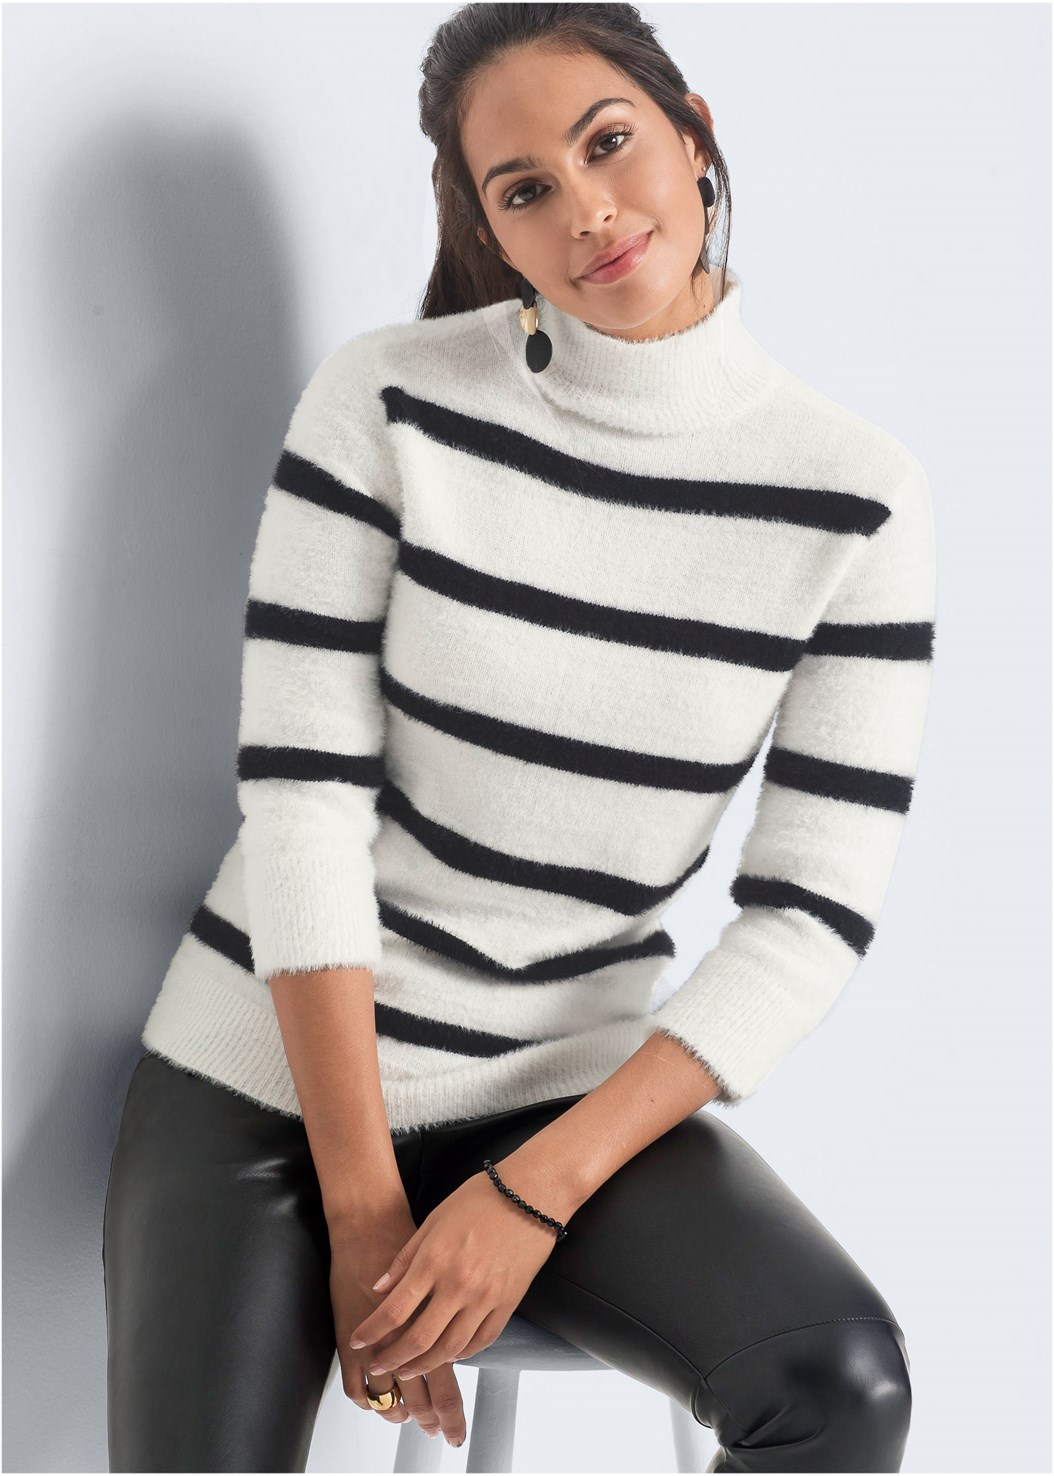 Eyelash Turtleneck Striped,Unlined Demi Bra,Faux Leather Pants,Block Heel Boots,Bauble Hoop Earrings